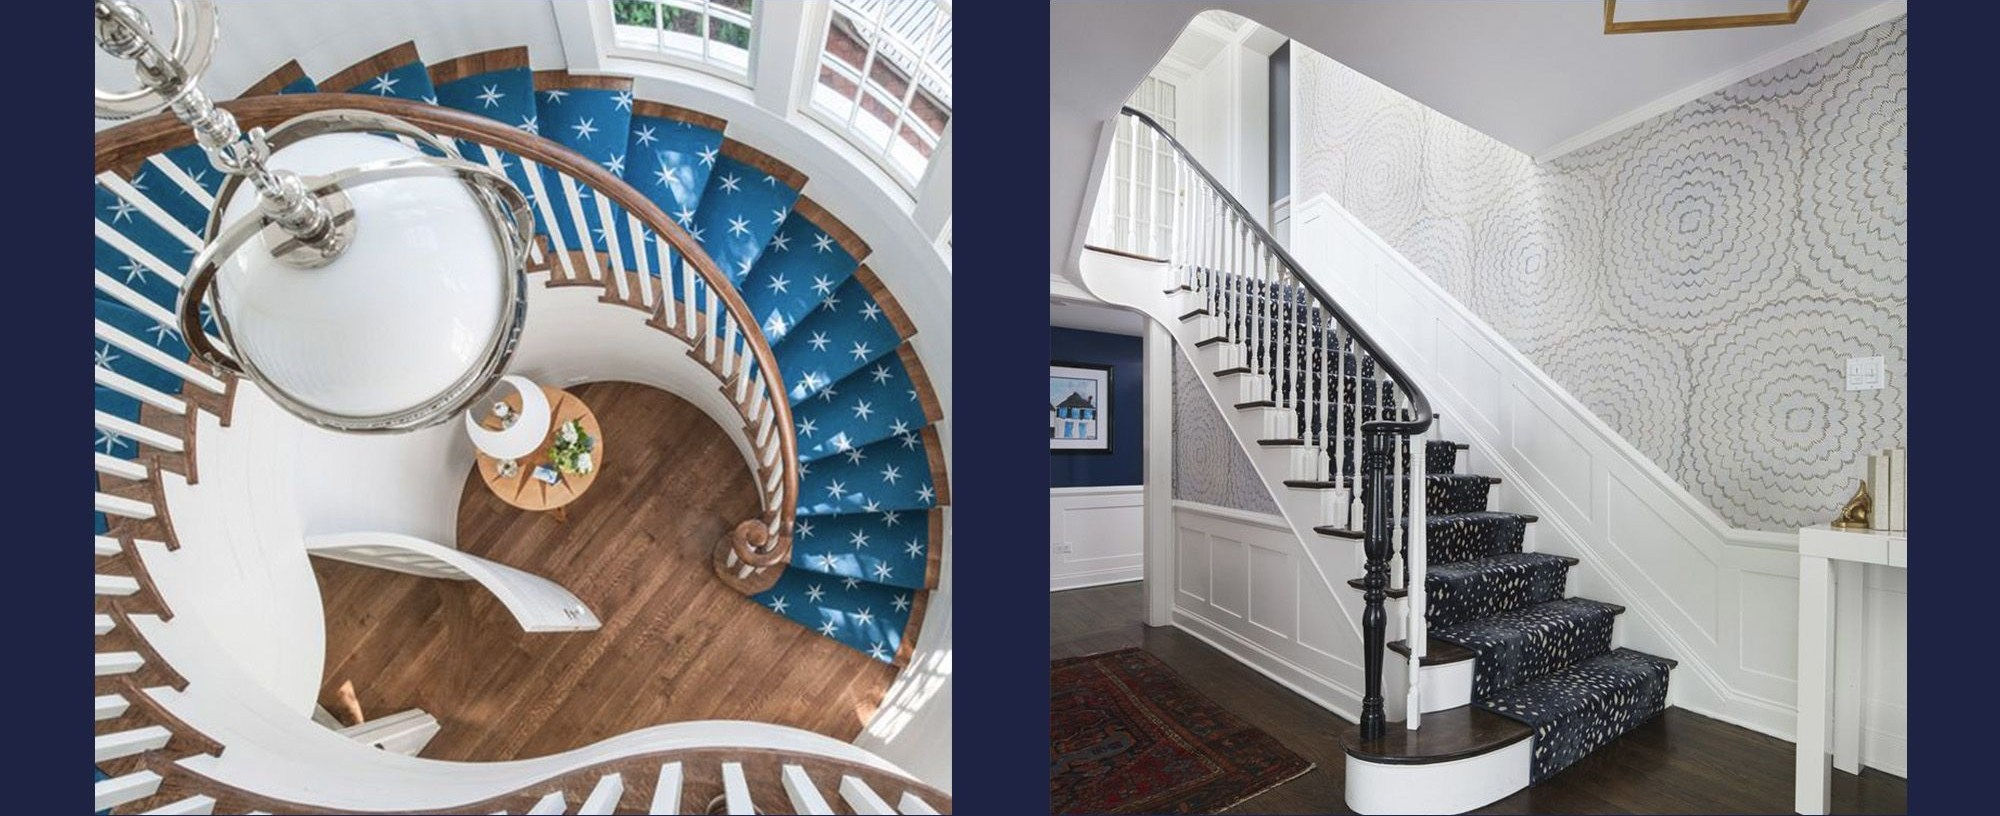 25 Stunning Carpeted Staircase Ideas Most Beautiful Staircase | Navy Carpet On Stairs | Wooden | Loop Pile | Wall To Wall Carpet | Dark Blue | Geometric